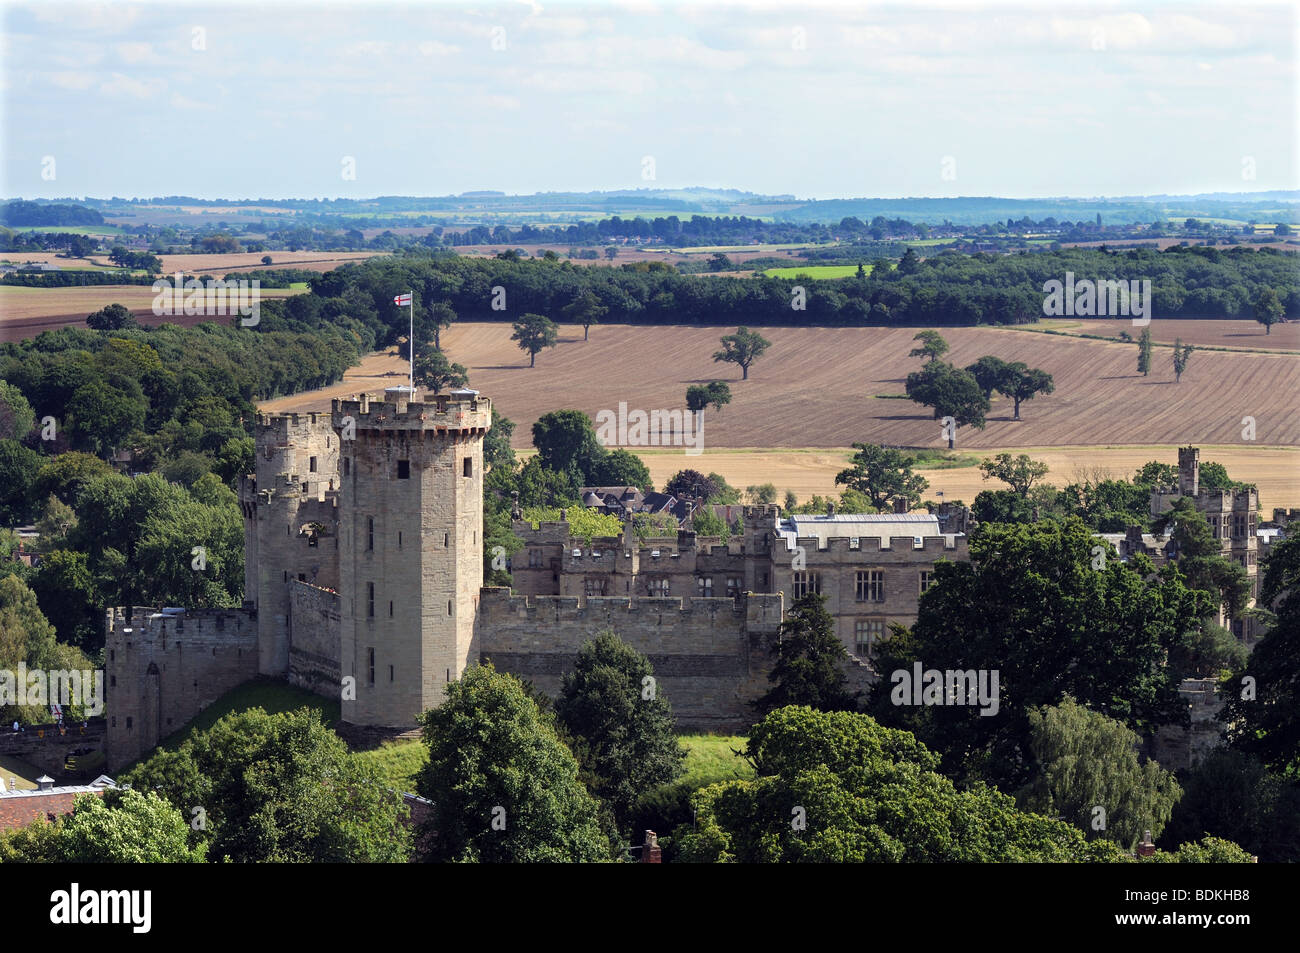 Warwick Castle tower and fortifications from top of tower of St Mary's Church Warwick England - Stock Image